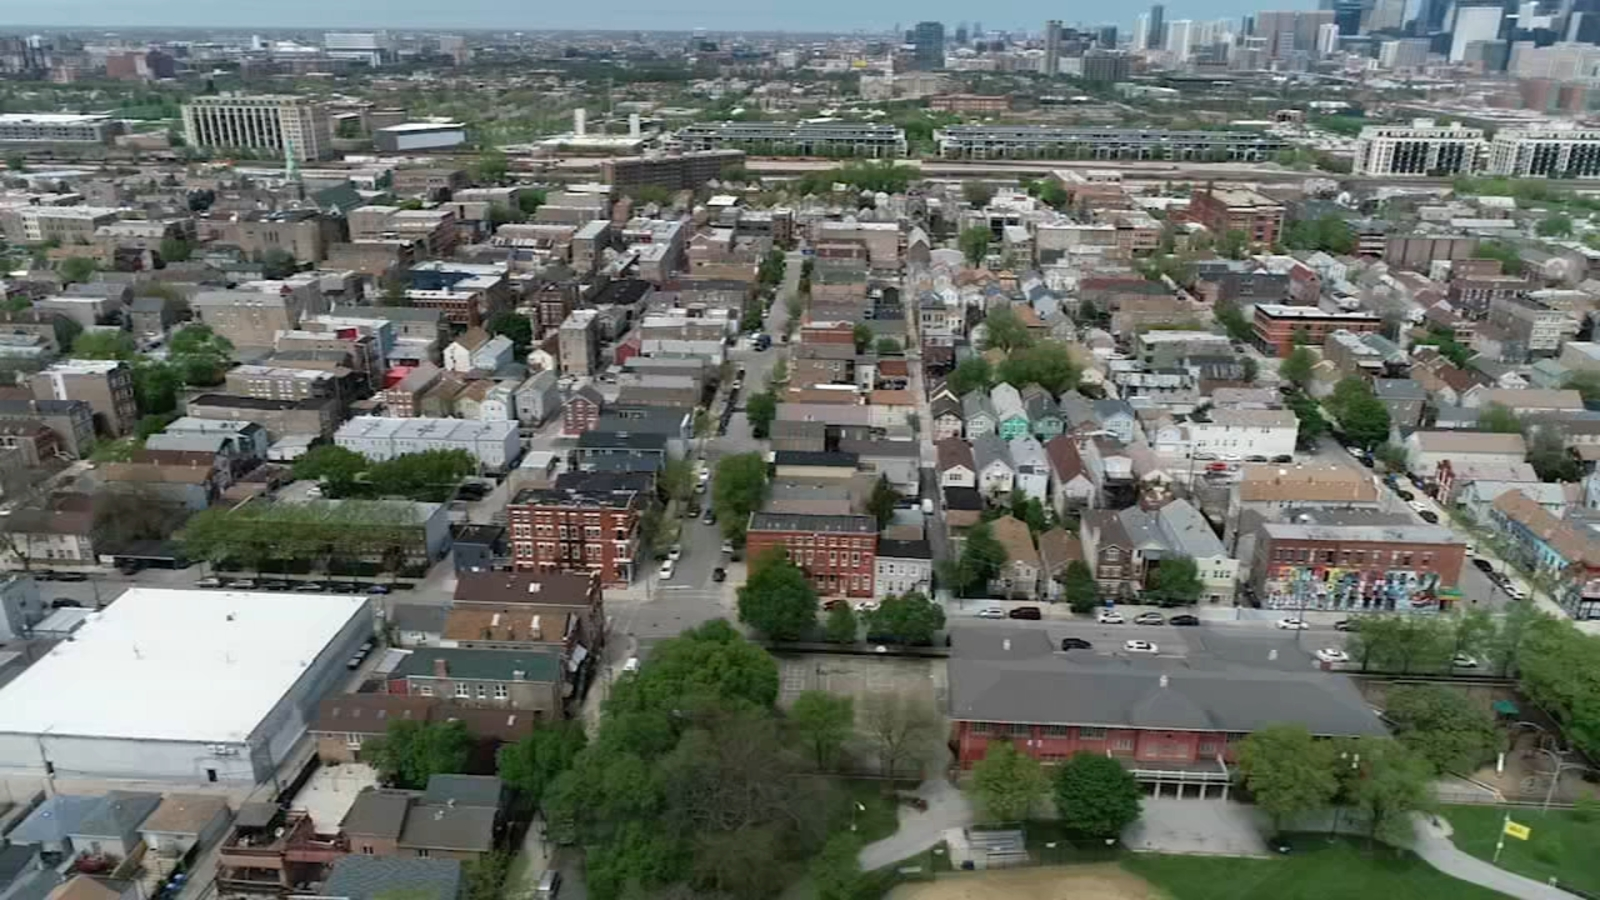 Illinois property taxes based on government debt make Chicago renters rethinking buying a house